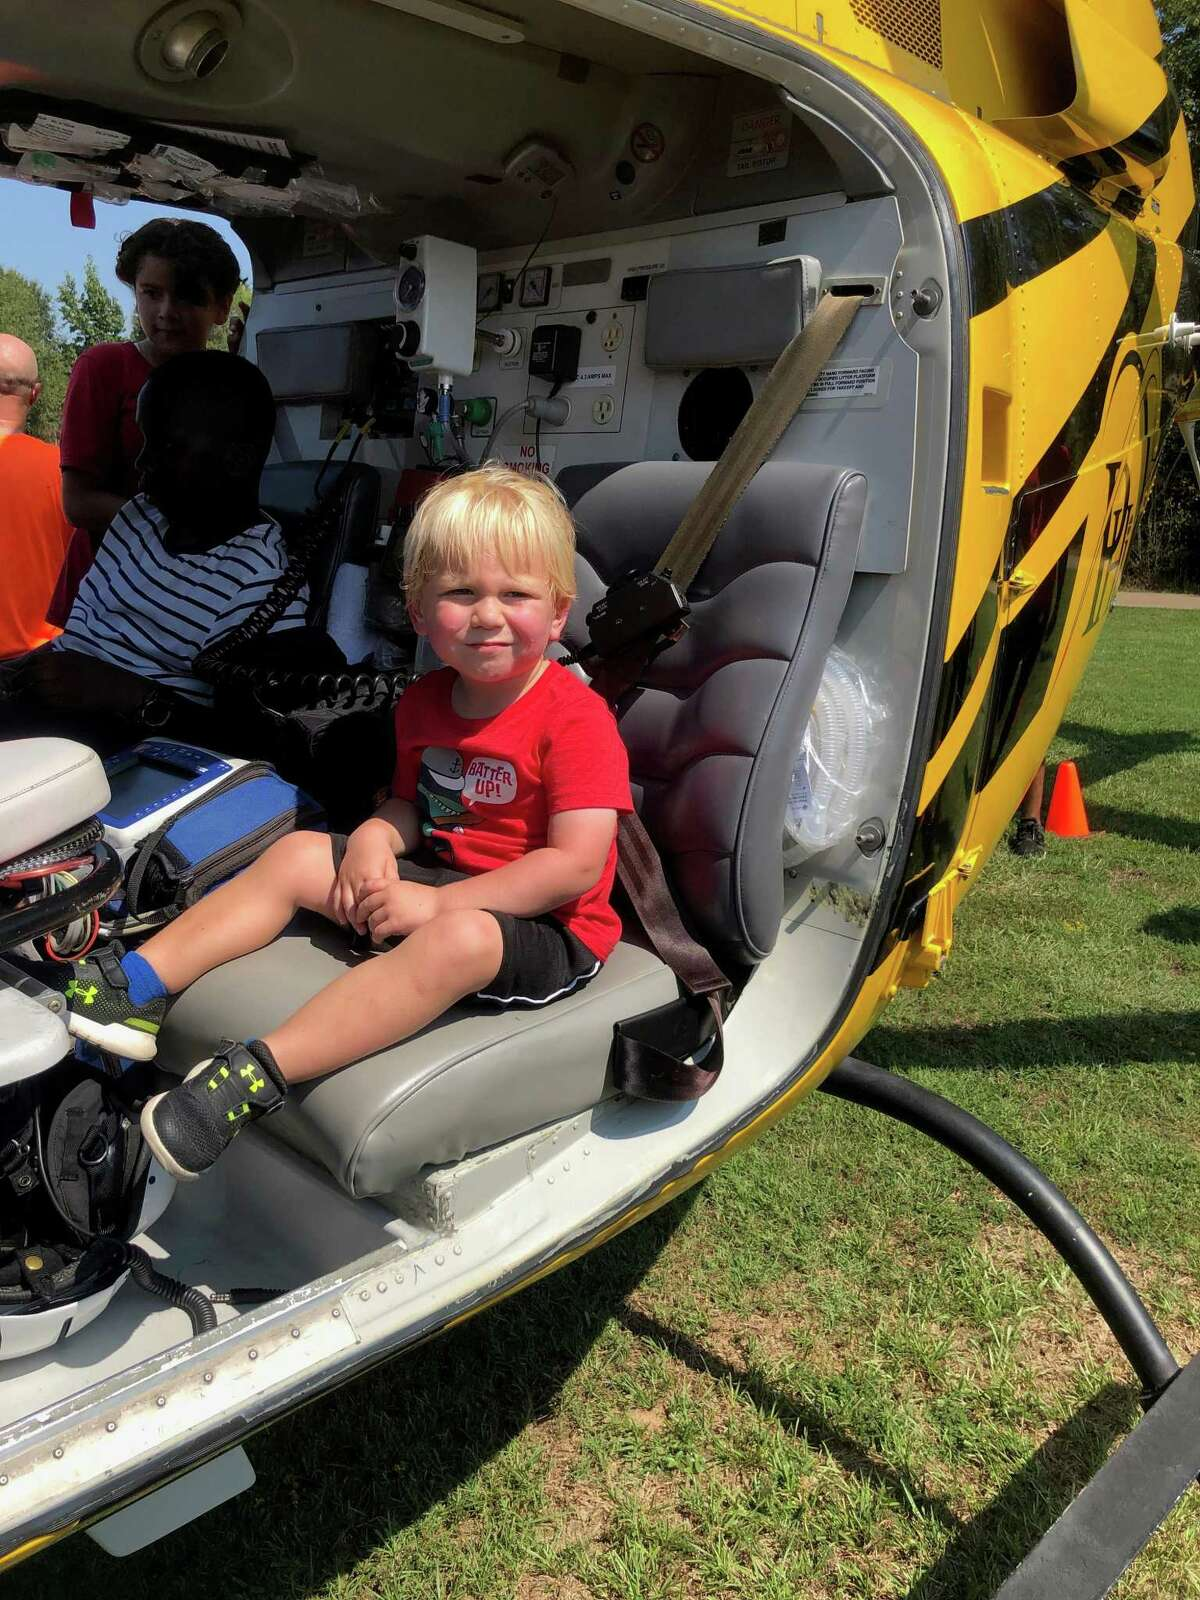 Youngsters explored the inside of a PHI Medical Helicopter on Sept. 14 at the Conroe Noon Kiwanis Club's Kids Day at the Park. Pictured is Rylan Duke, 2 years old. His parents are Matt and Lindsay Duke.